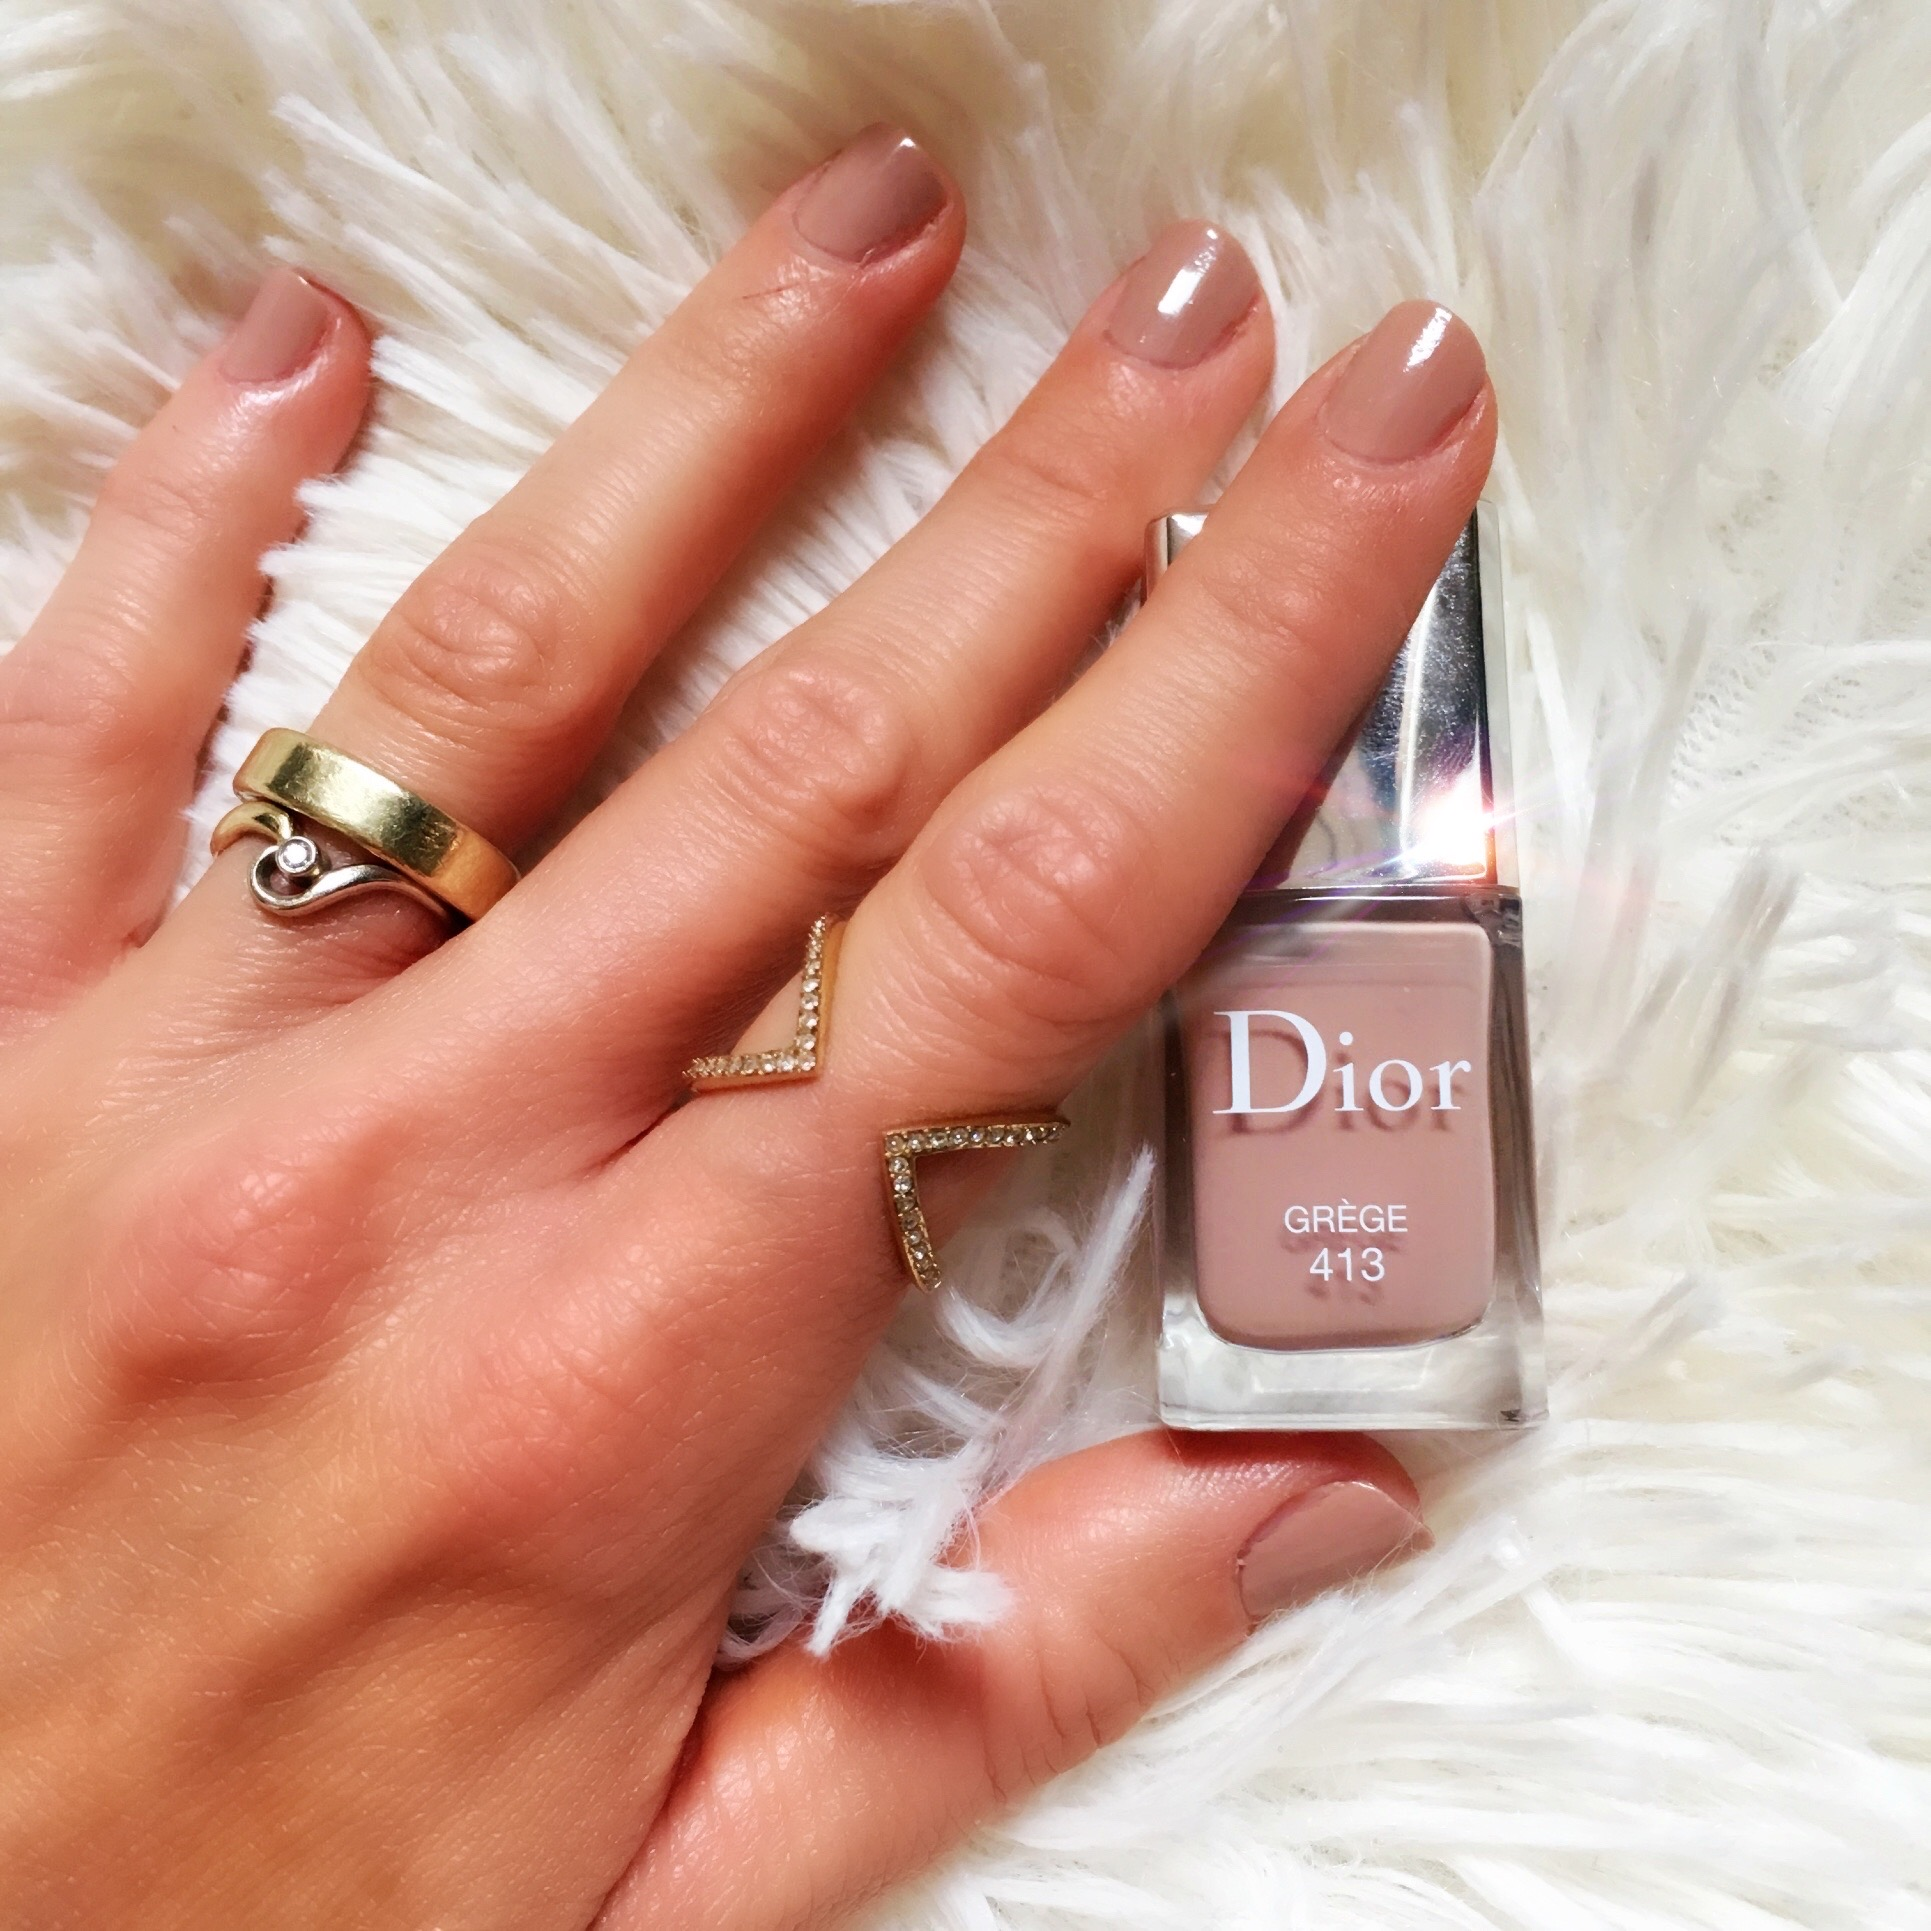 images How To Do A Manicure At Home: 10 Simple Steps